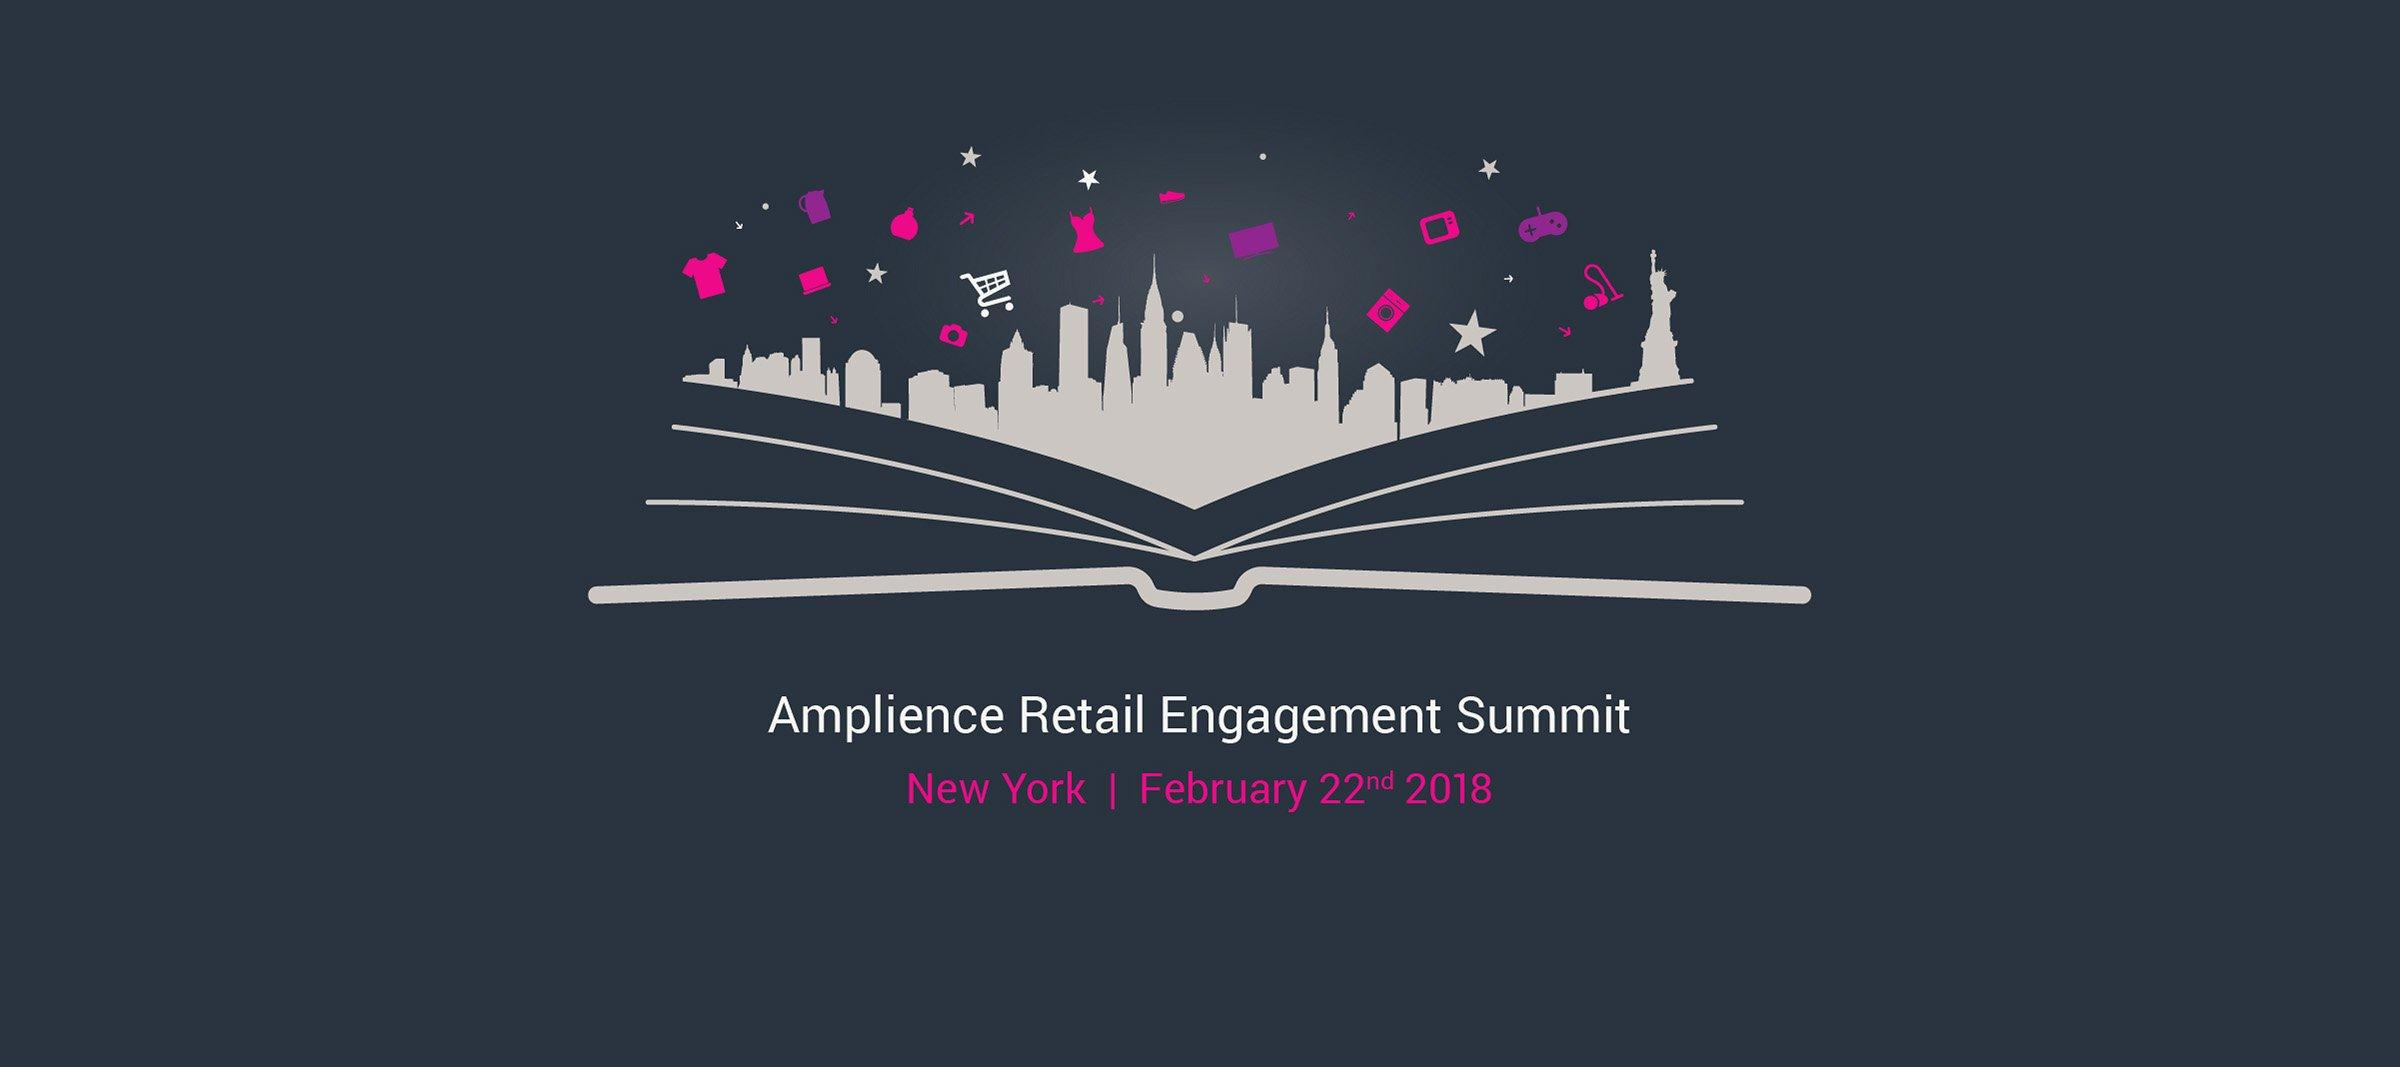 A124 Amplience Retail Engagement Summit website hero_2400x1067-02